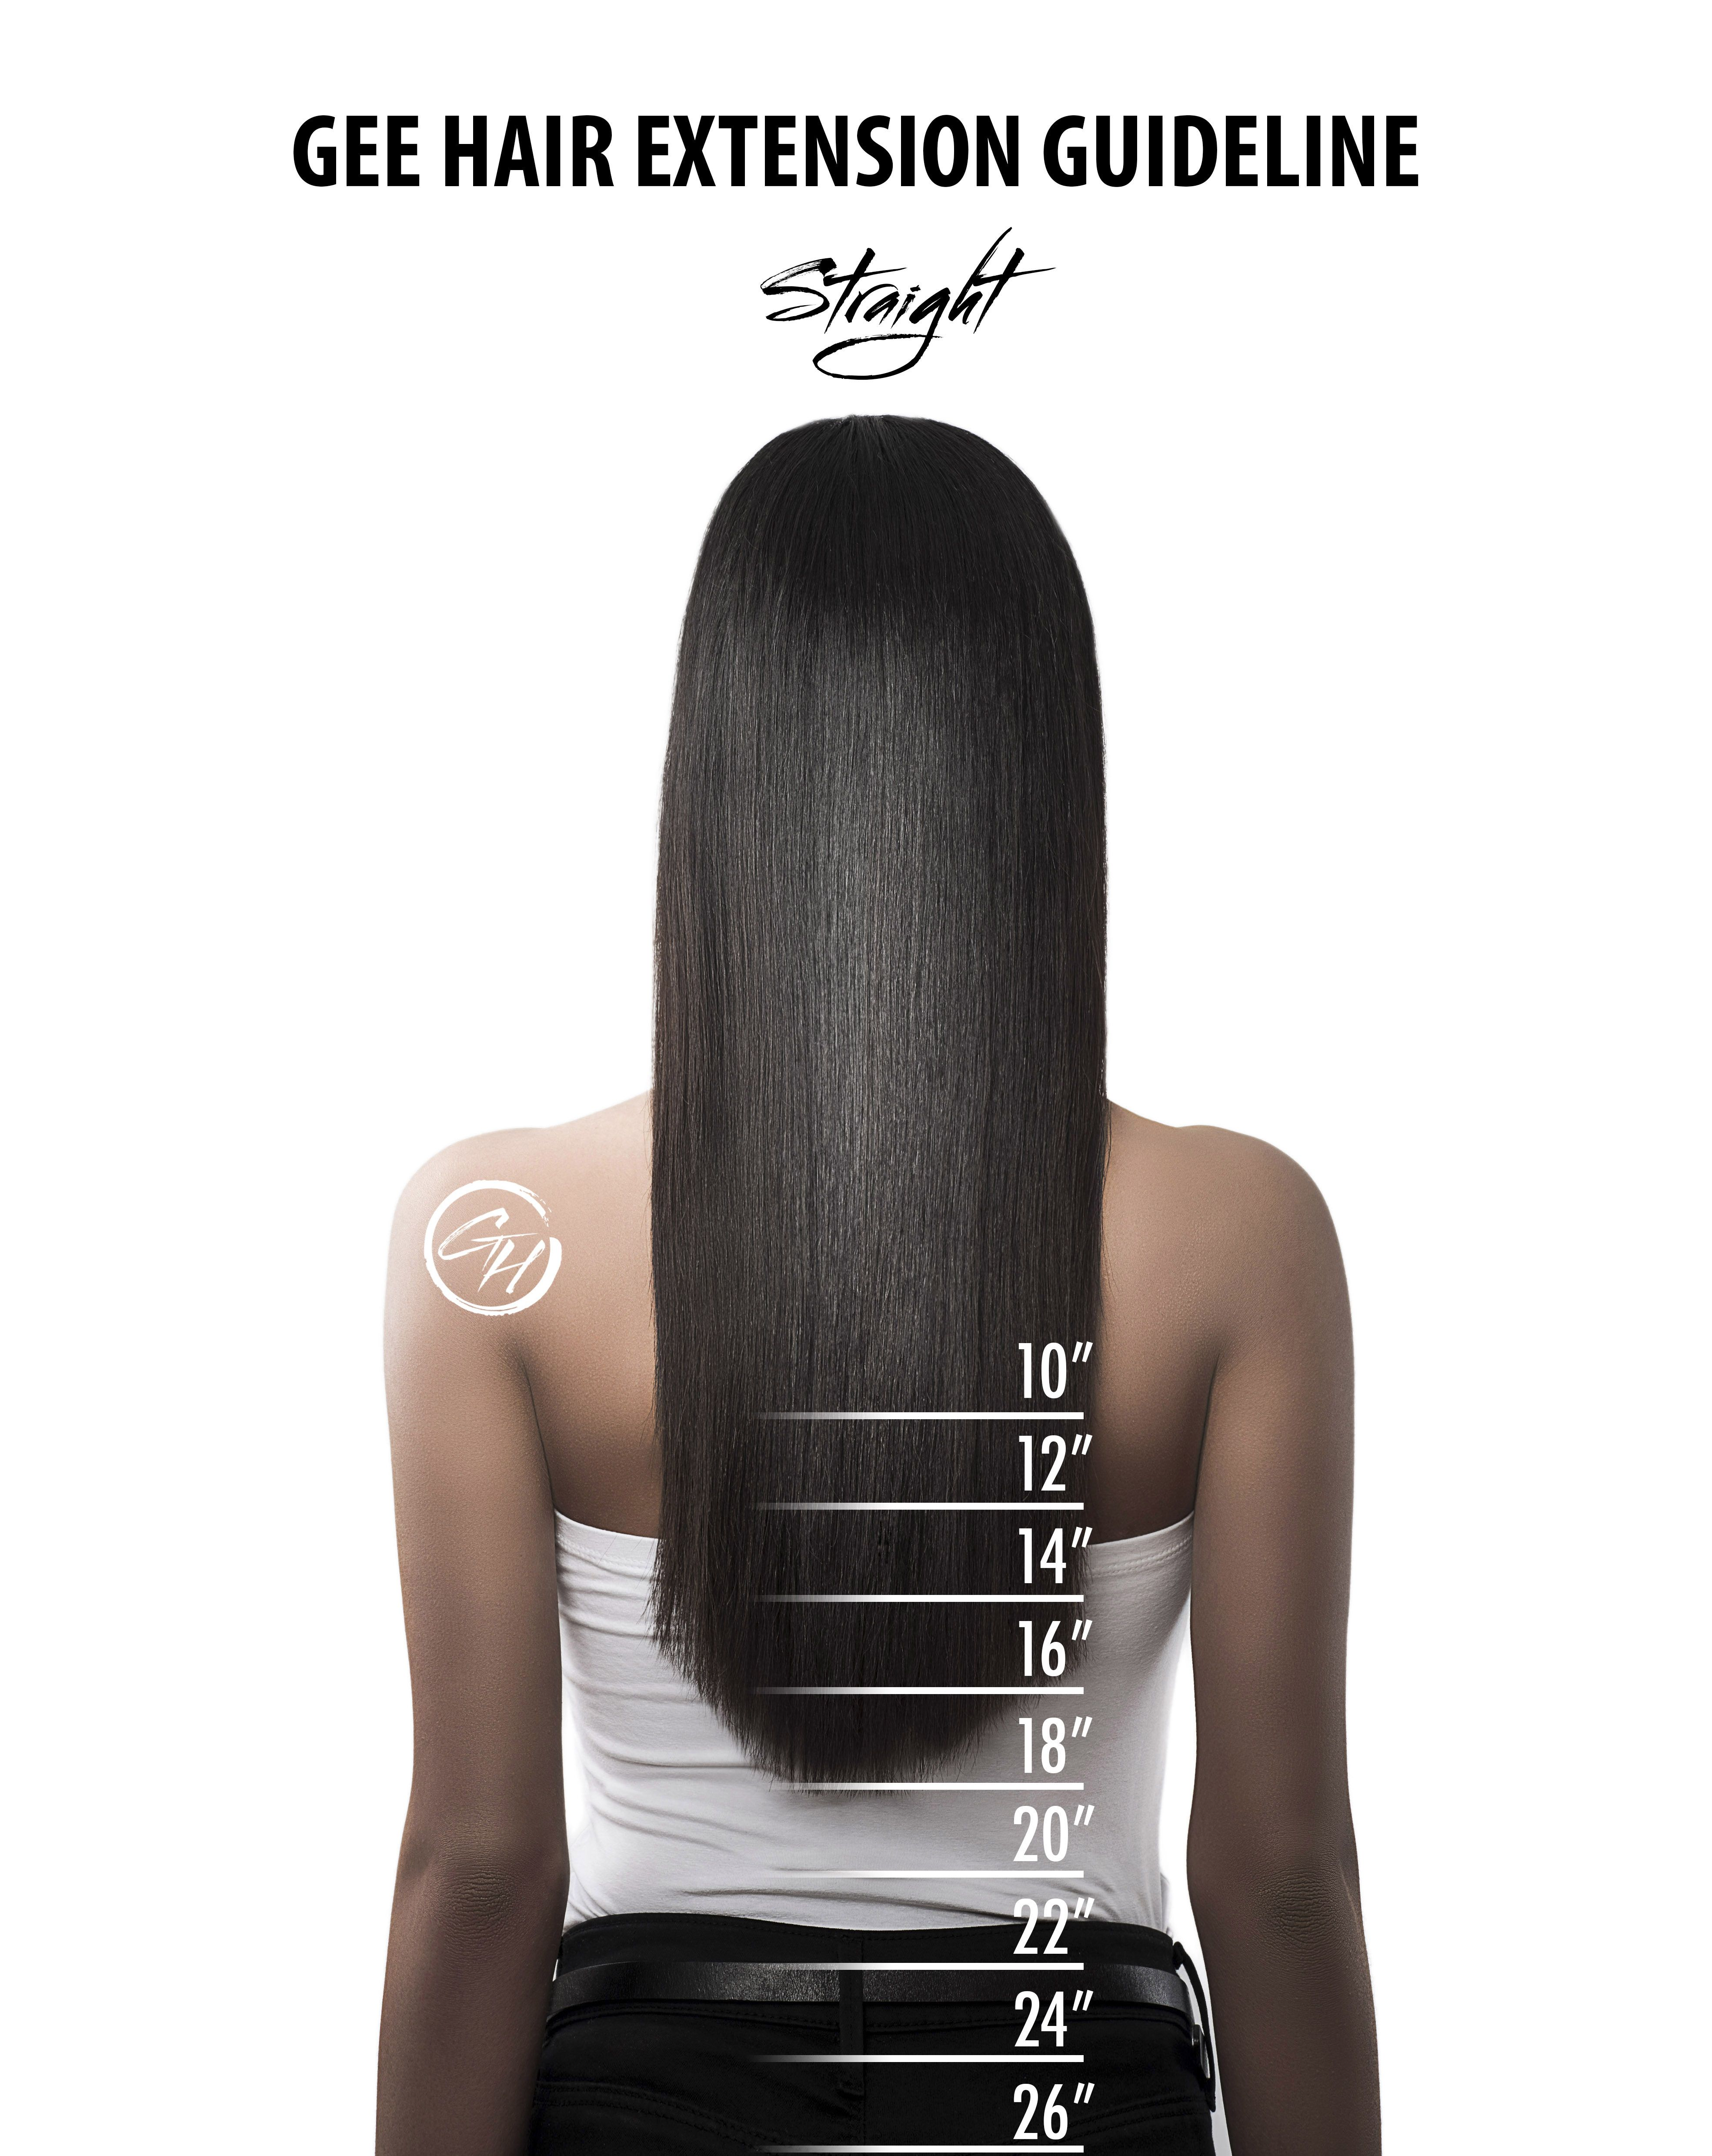 Check out our hair extension guideline whats your desired check out our hair extension guideline whats your desired length new lengths coming soon pmusecretfo Image collections